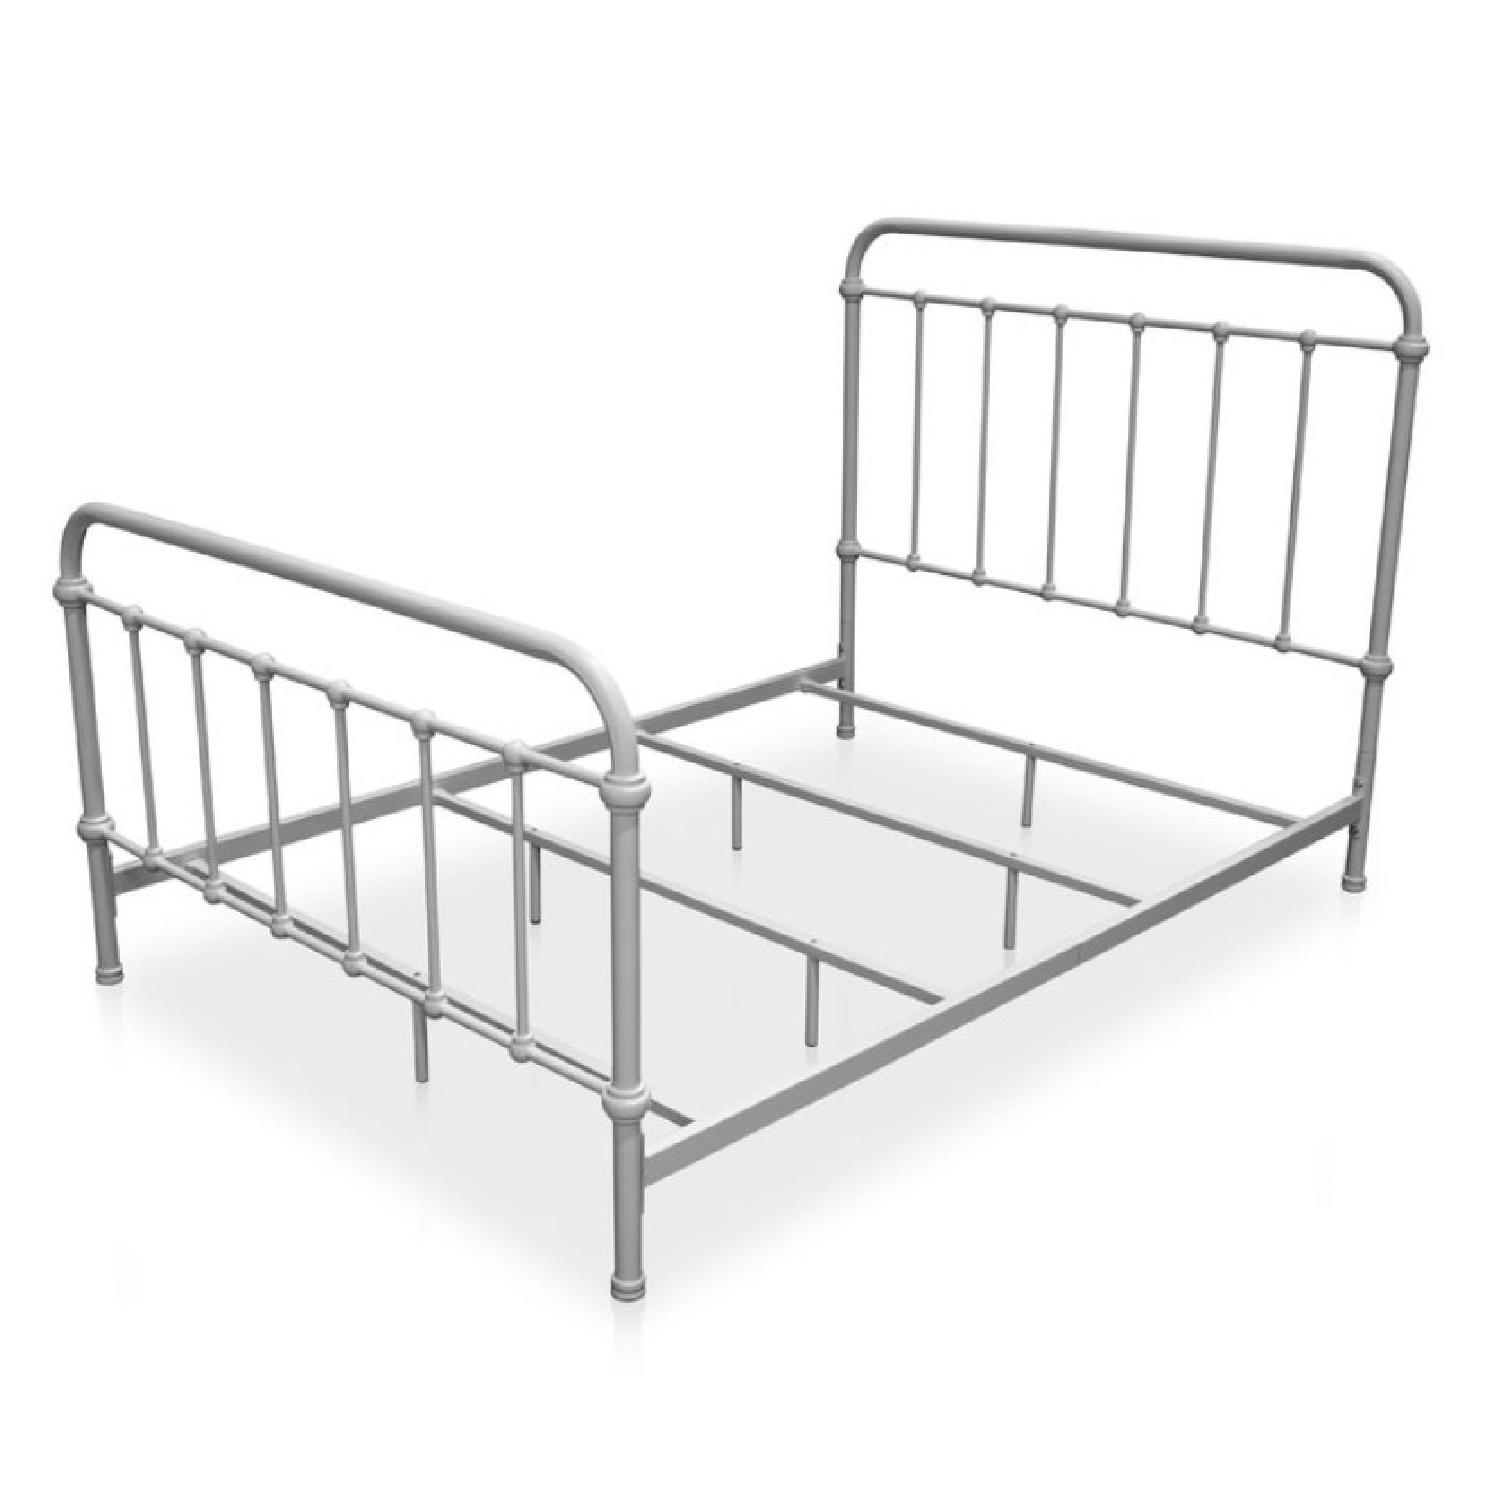 Shabby Chic Queen Metal Bed in Vintage White-1